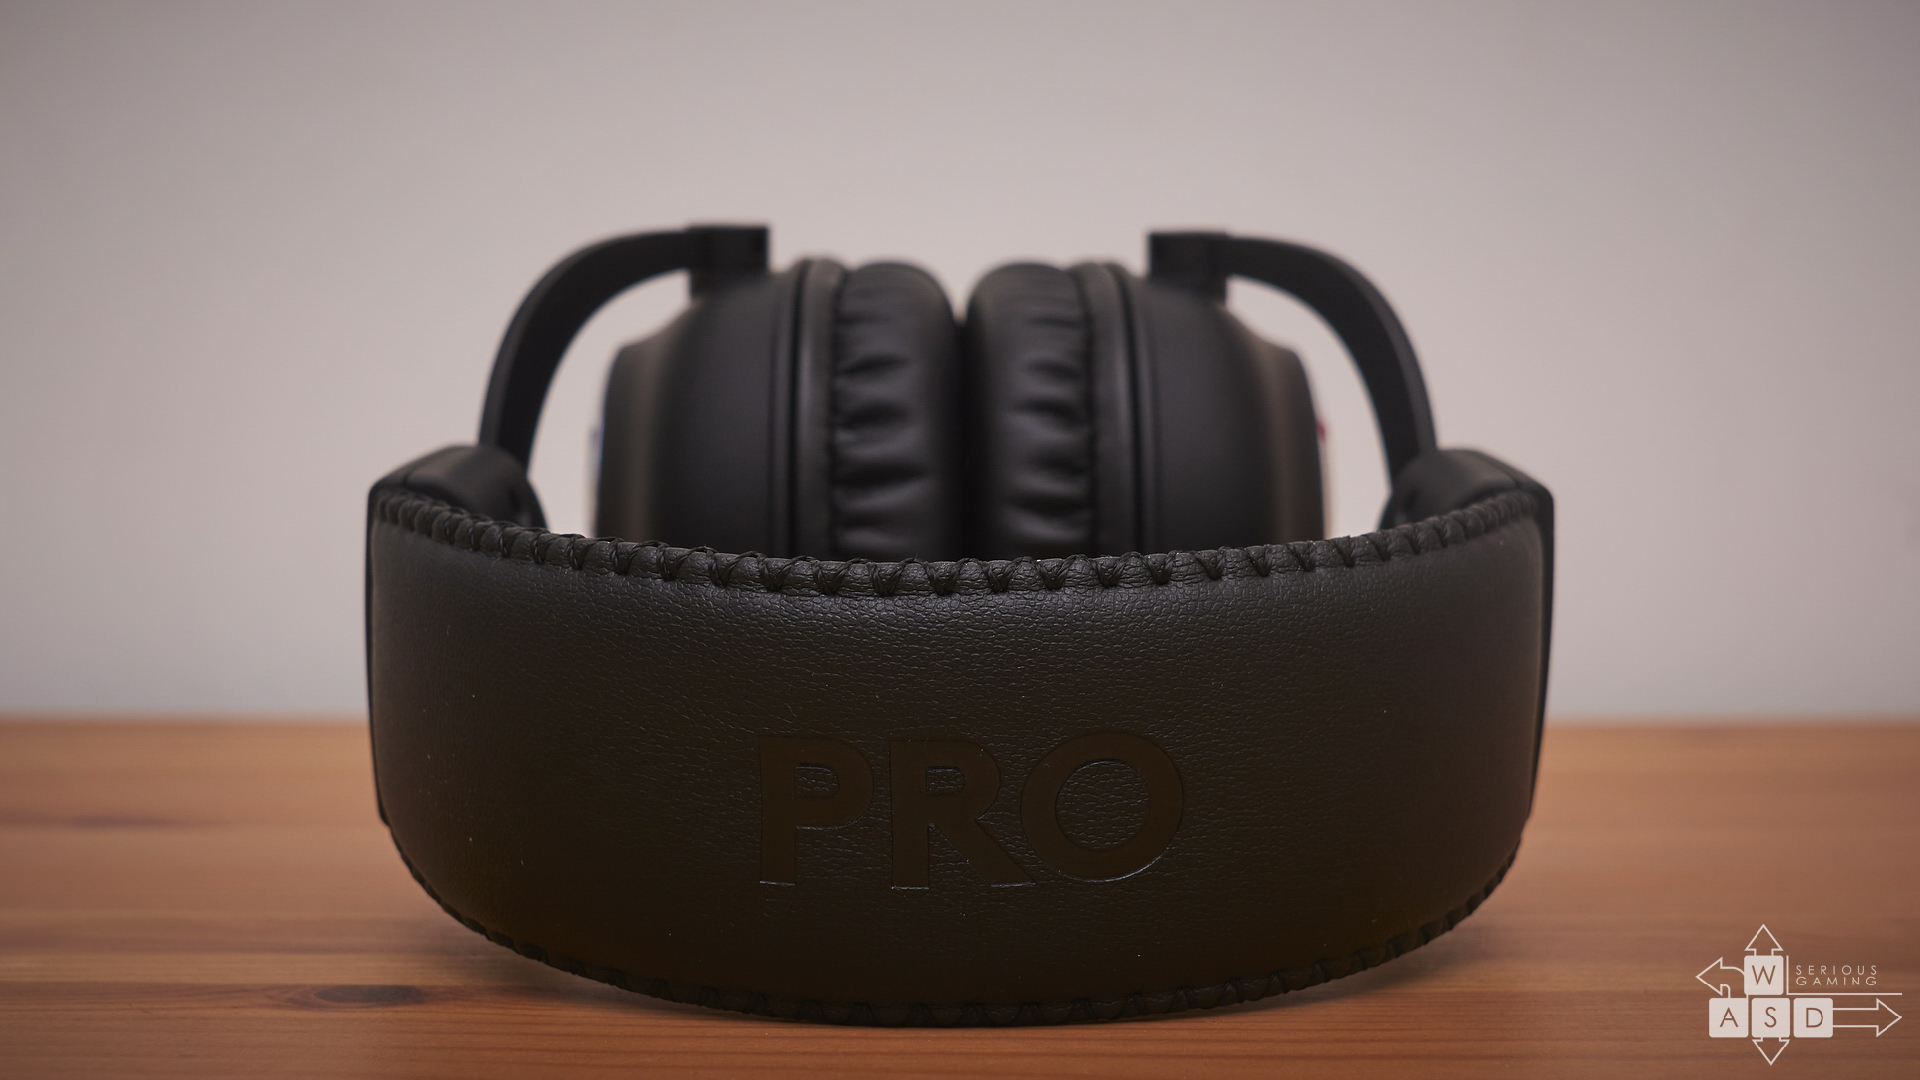 Logitech G Pro X Wireless Headphones review | WASD